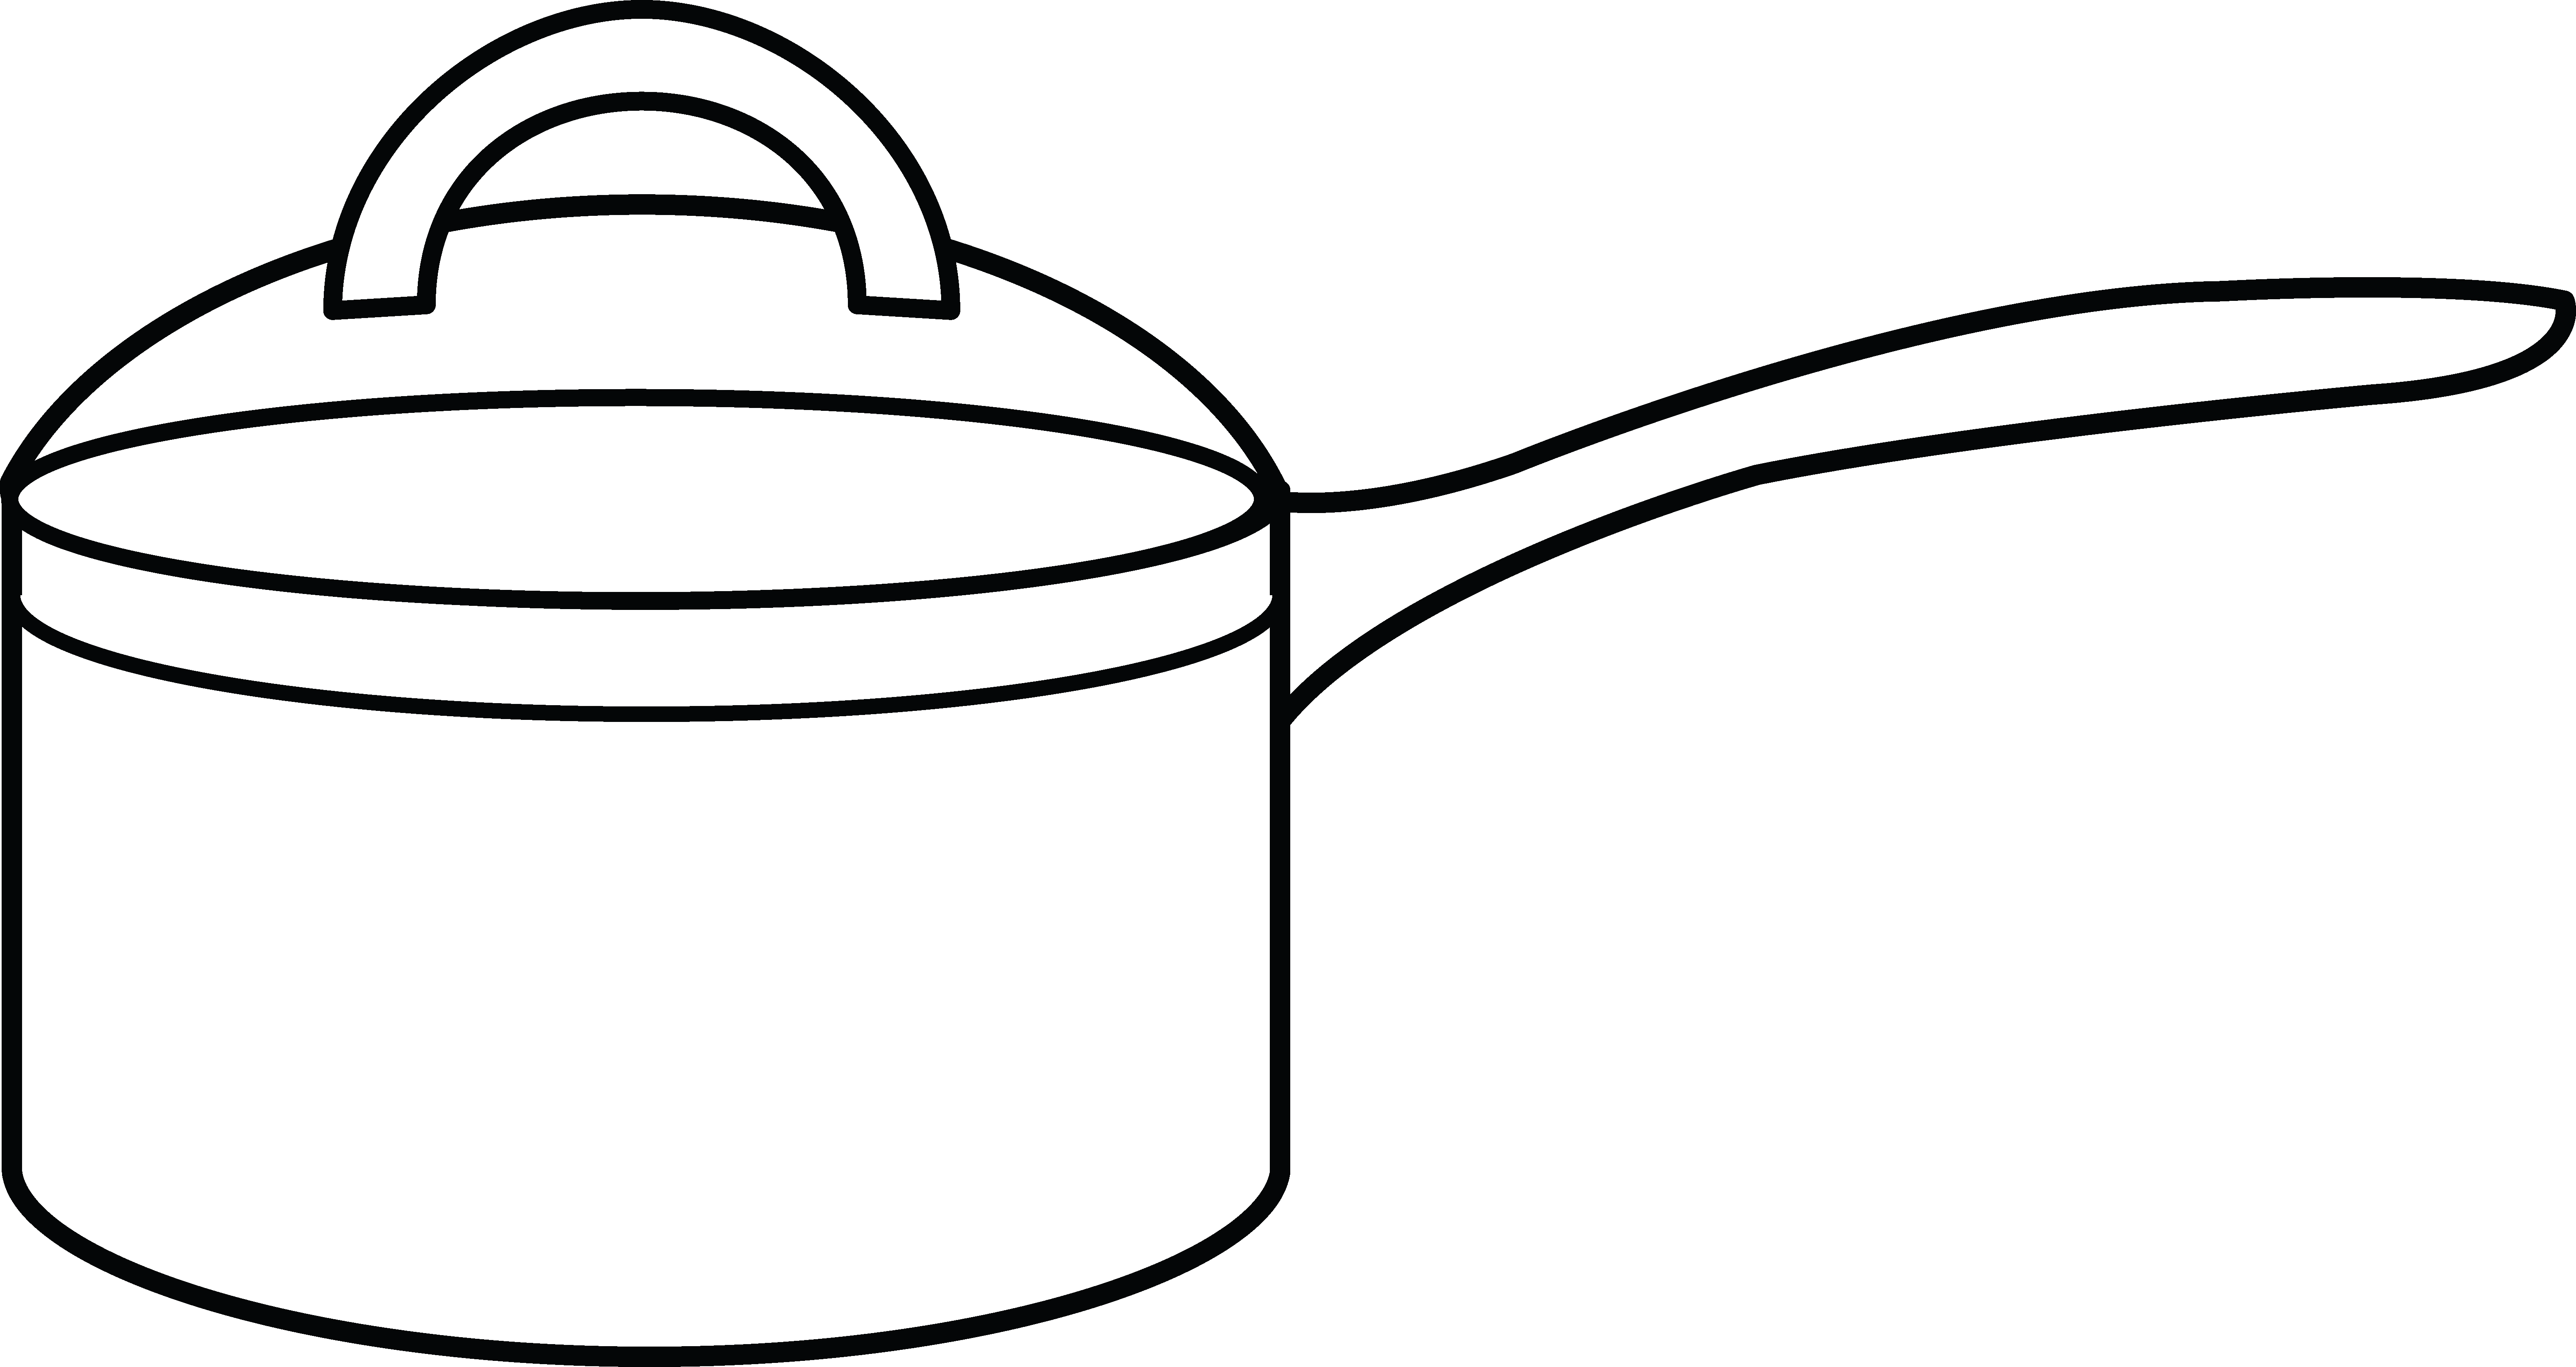 Coloring clipart fan. Cooking pot page free